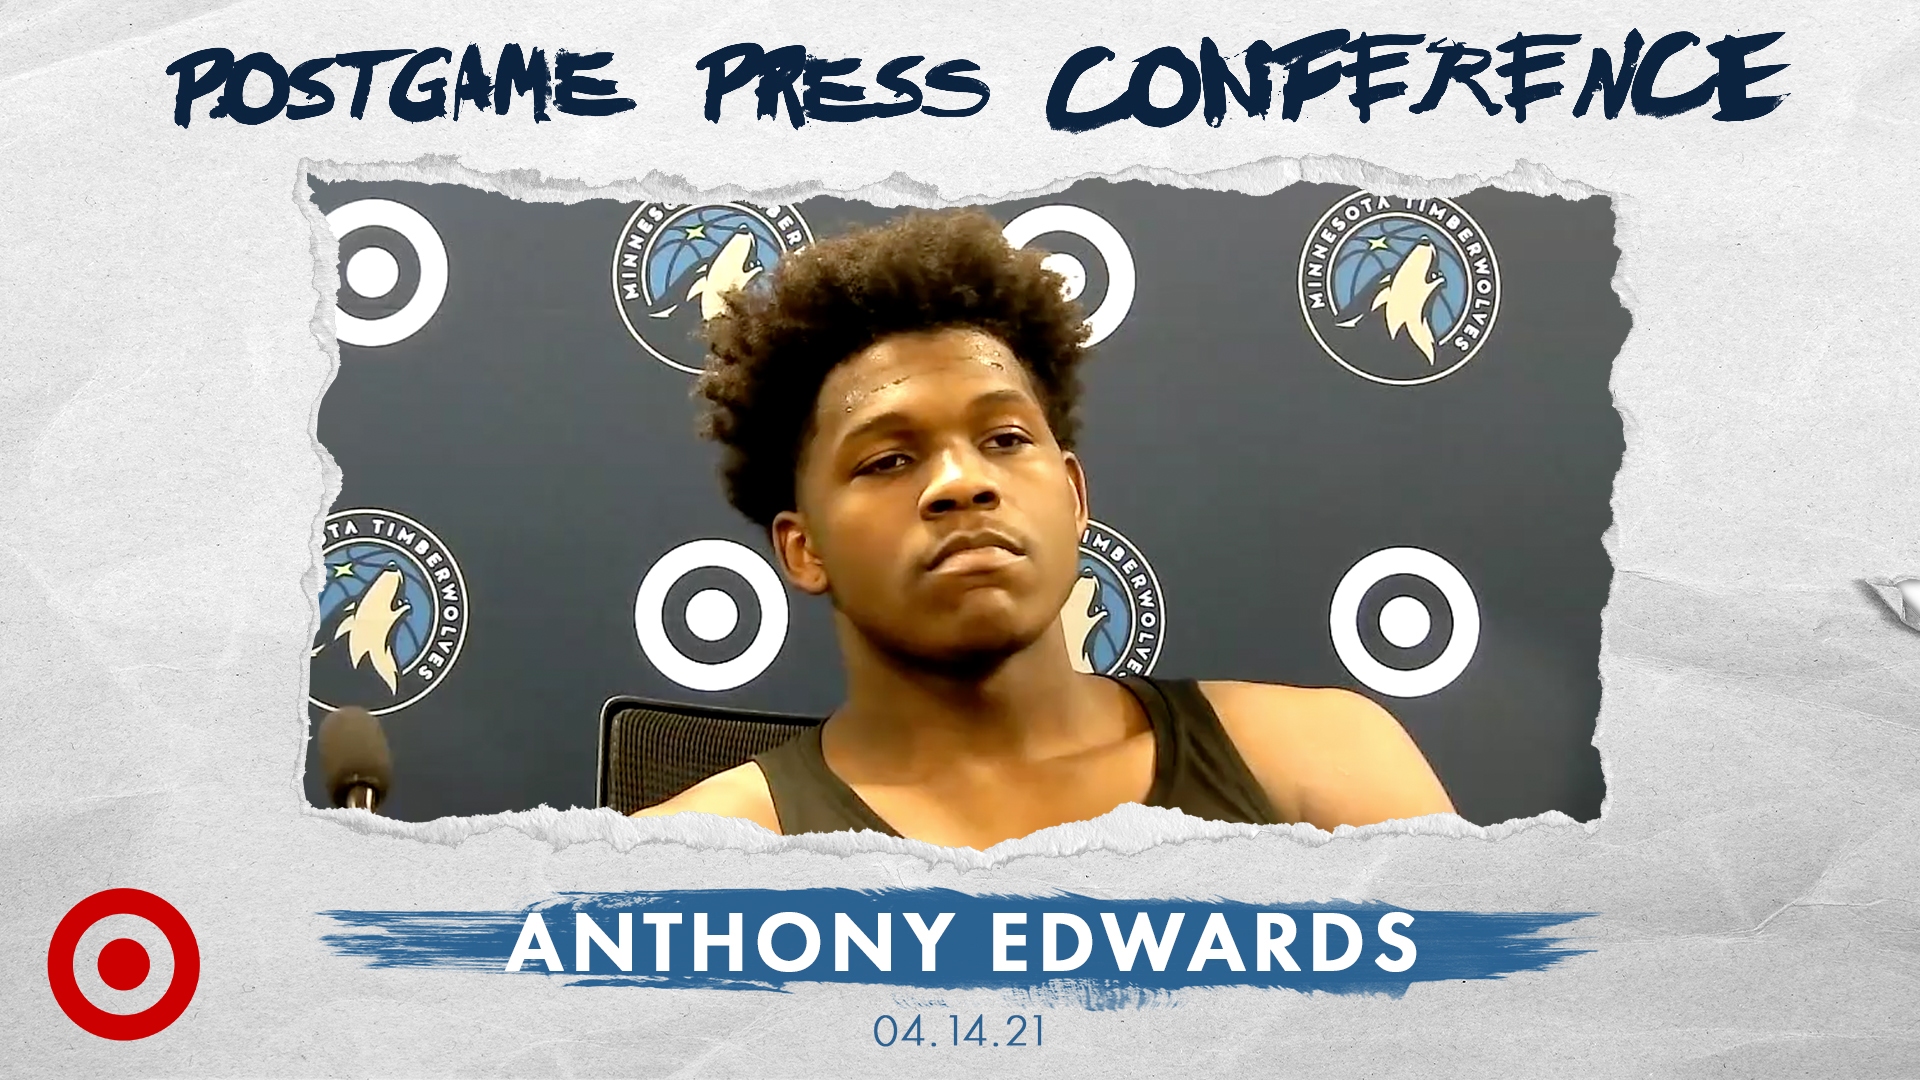 Anthony Edwards Postgame Press Conference - April 14, 2021